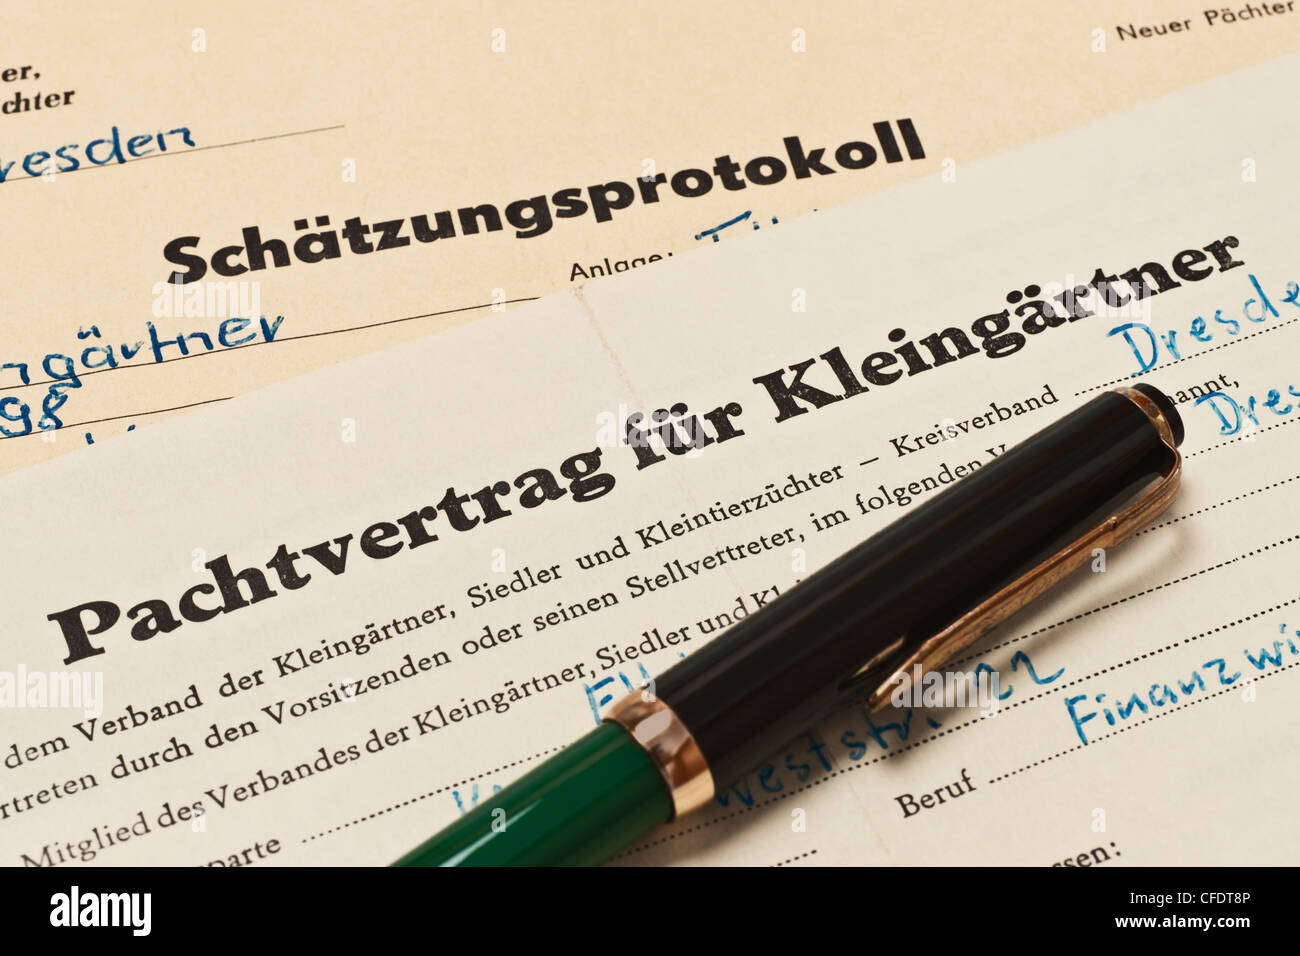 a lease contract for allotment holders, a assessment record from 1968, German language and a fountain pen - Stock Image